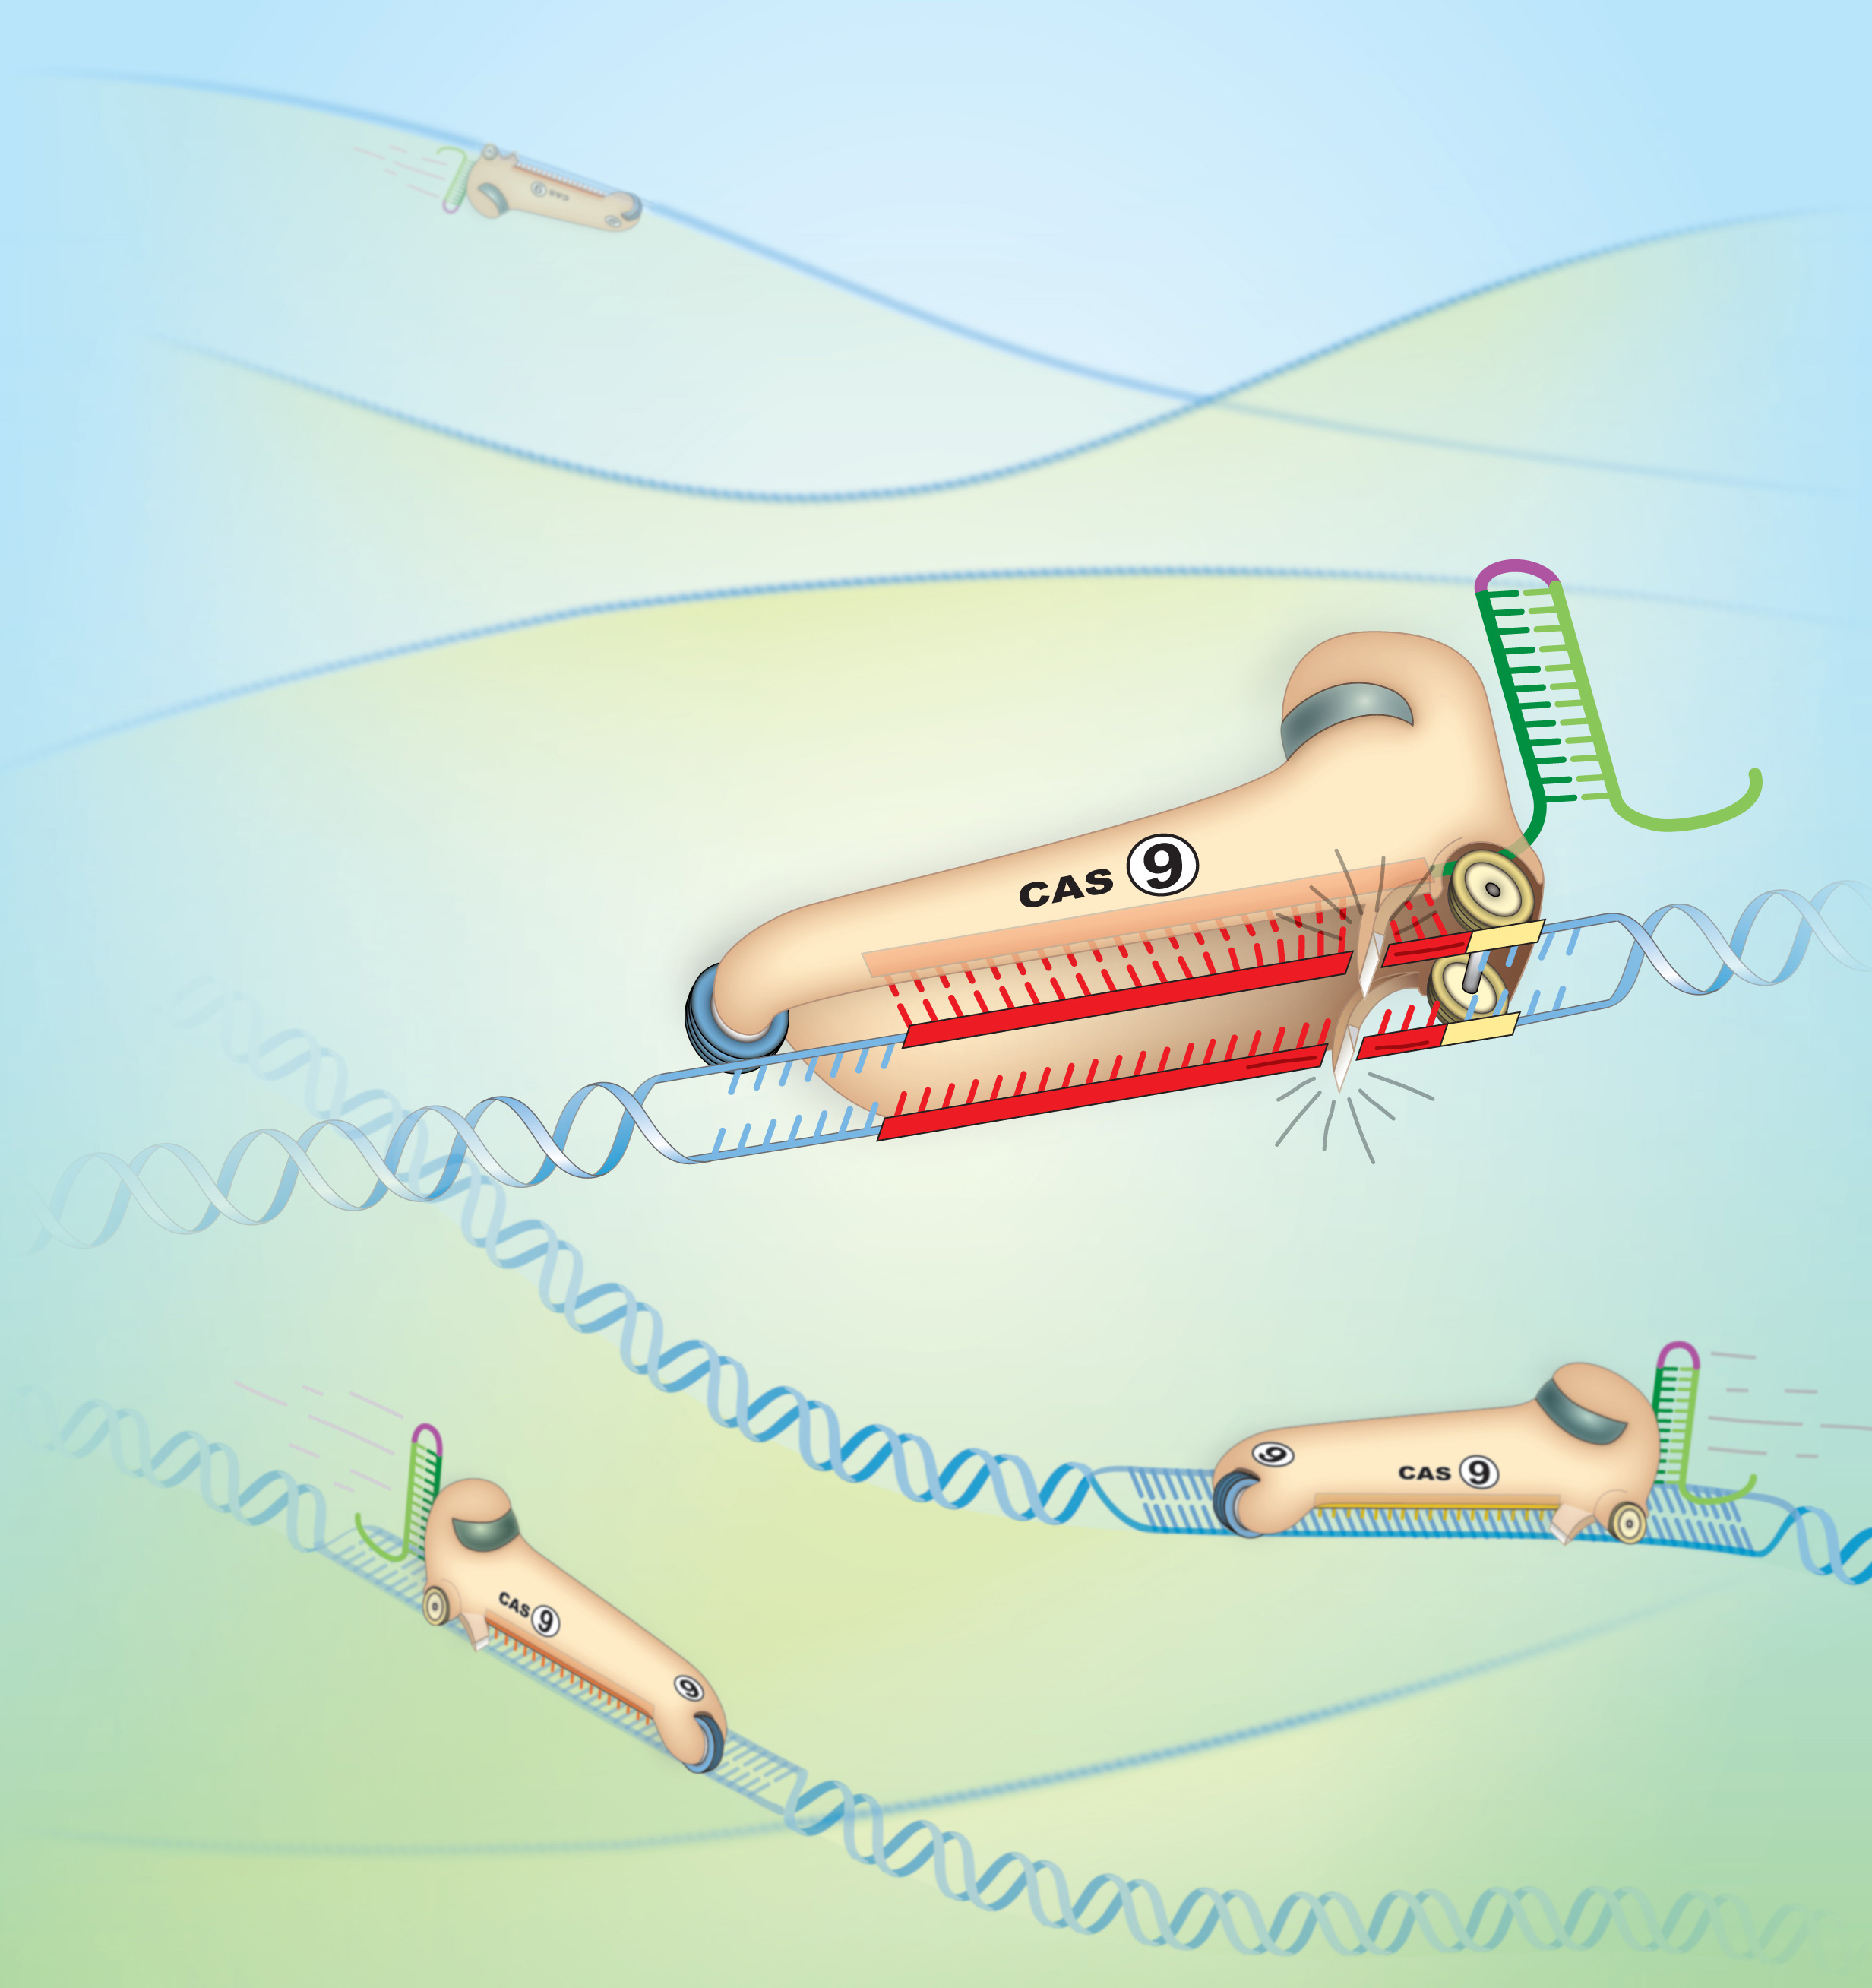 Cheap and easy technique to snip DNA could revolutionize